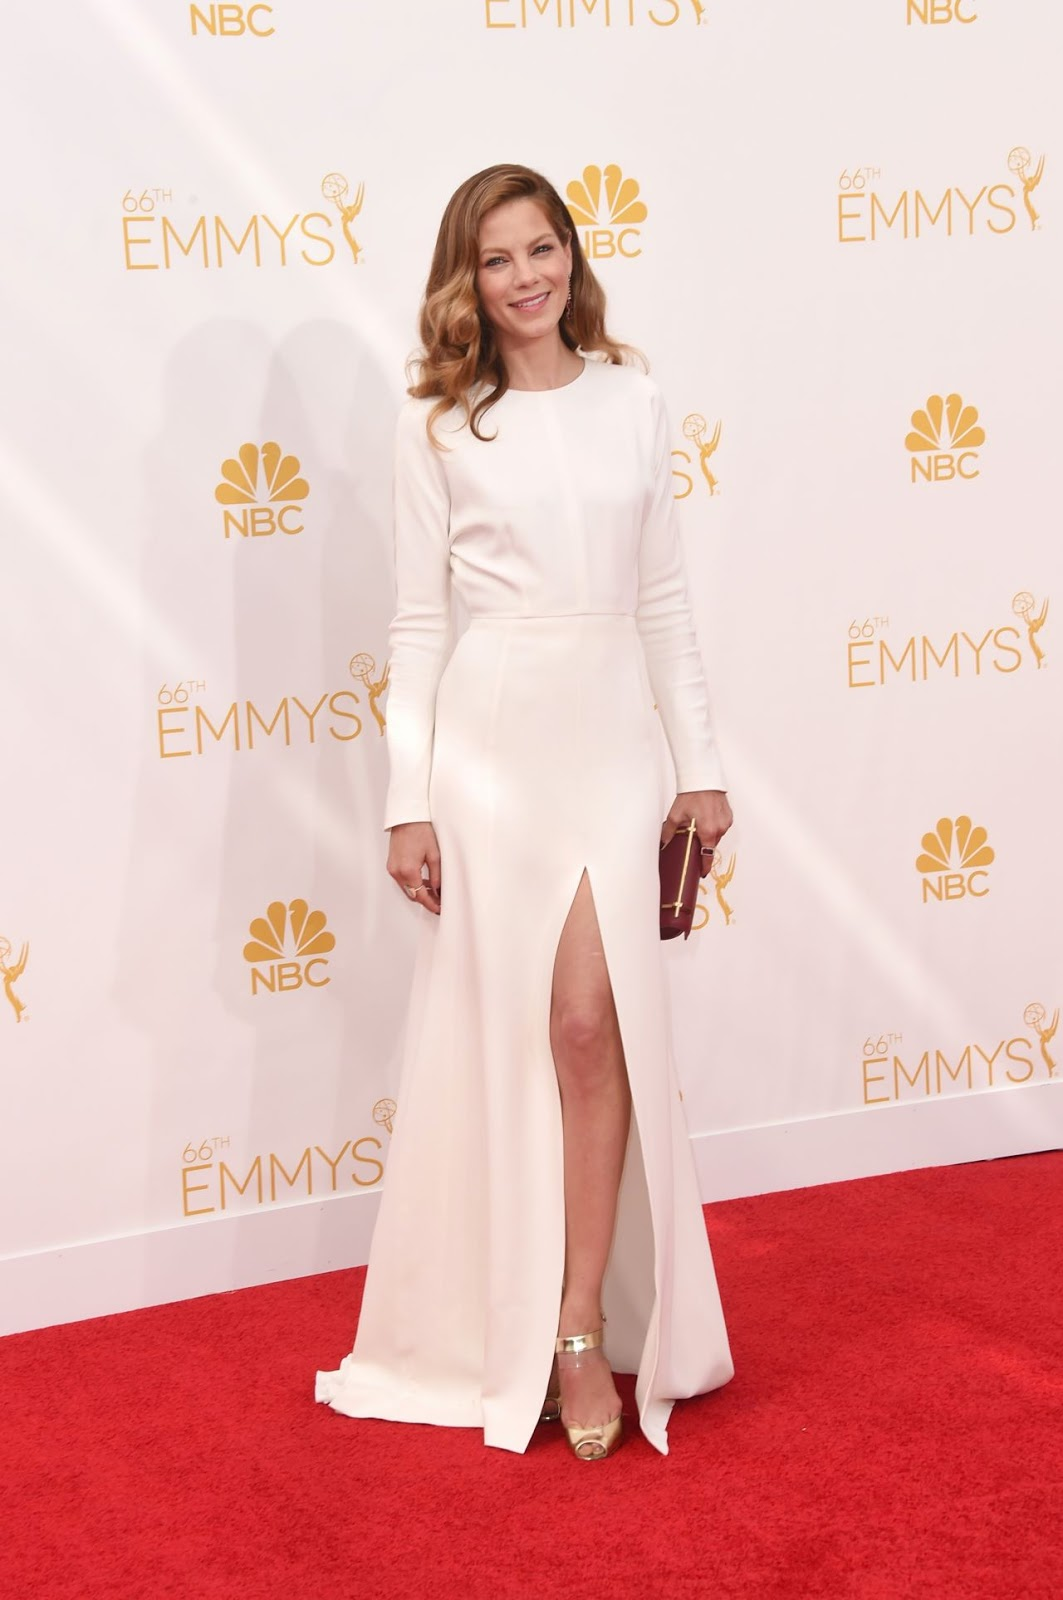 Michelle Monaghan shows off her legs in a high-slitted dress at the 2014 Emmy Awards